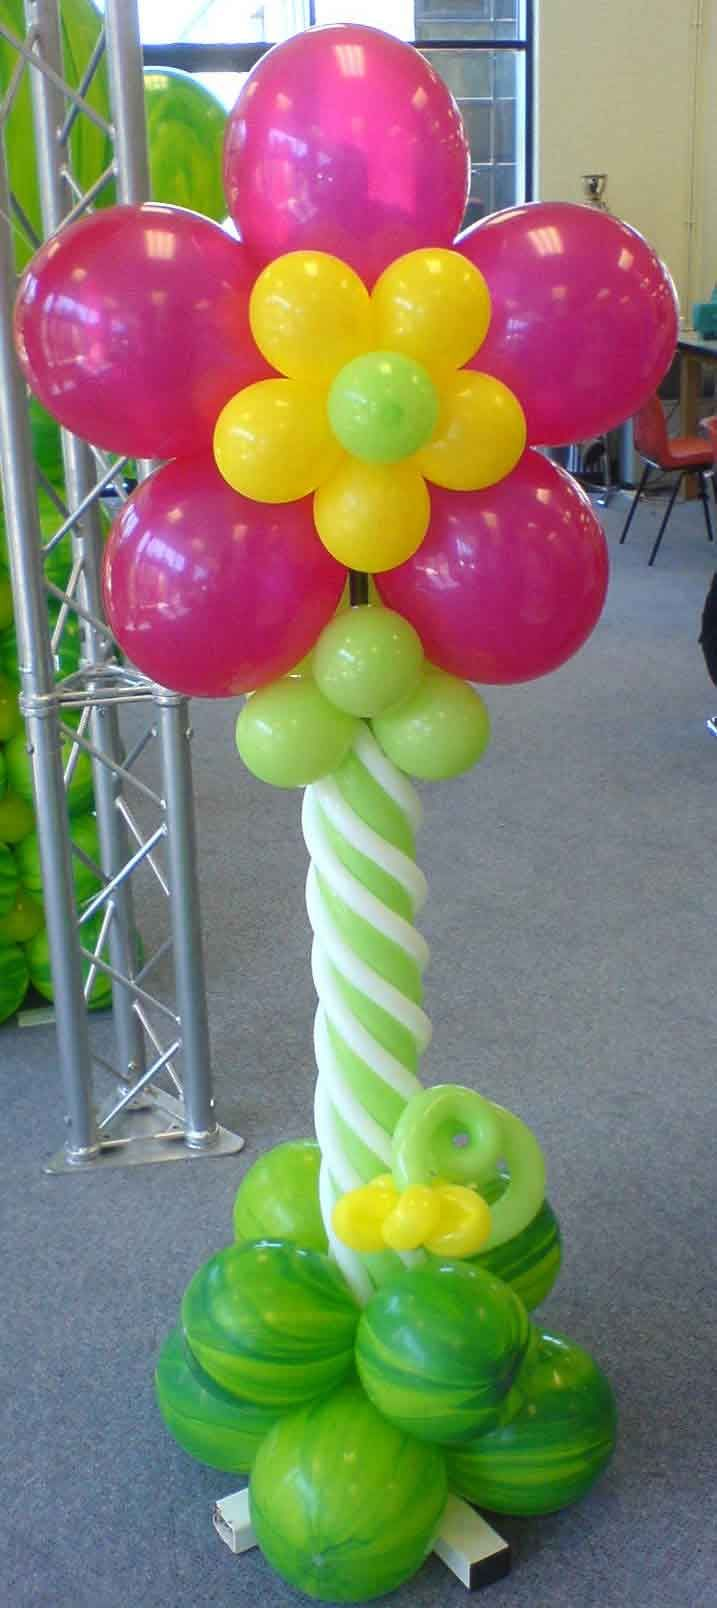 balloon flower & balloon flower | Globos | Pinterest | Balloon flowers Flower and ...